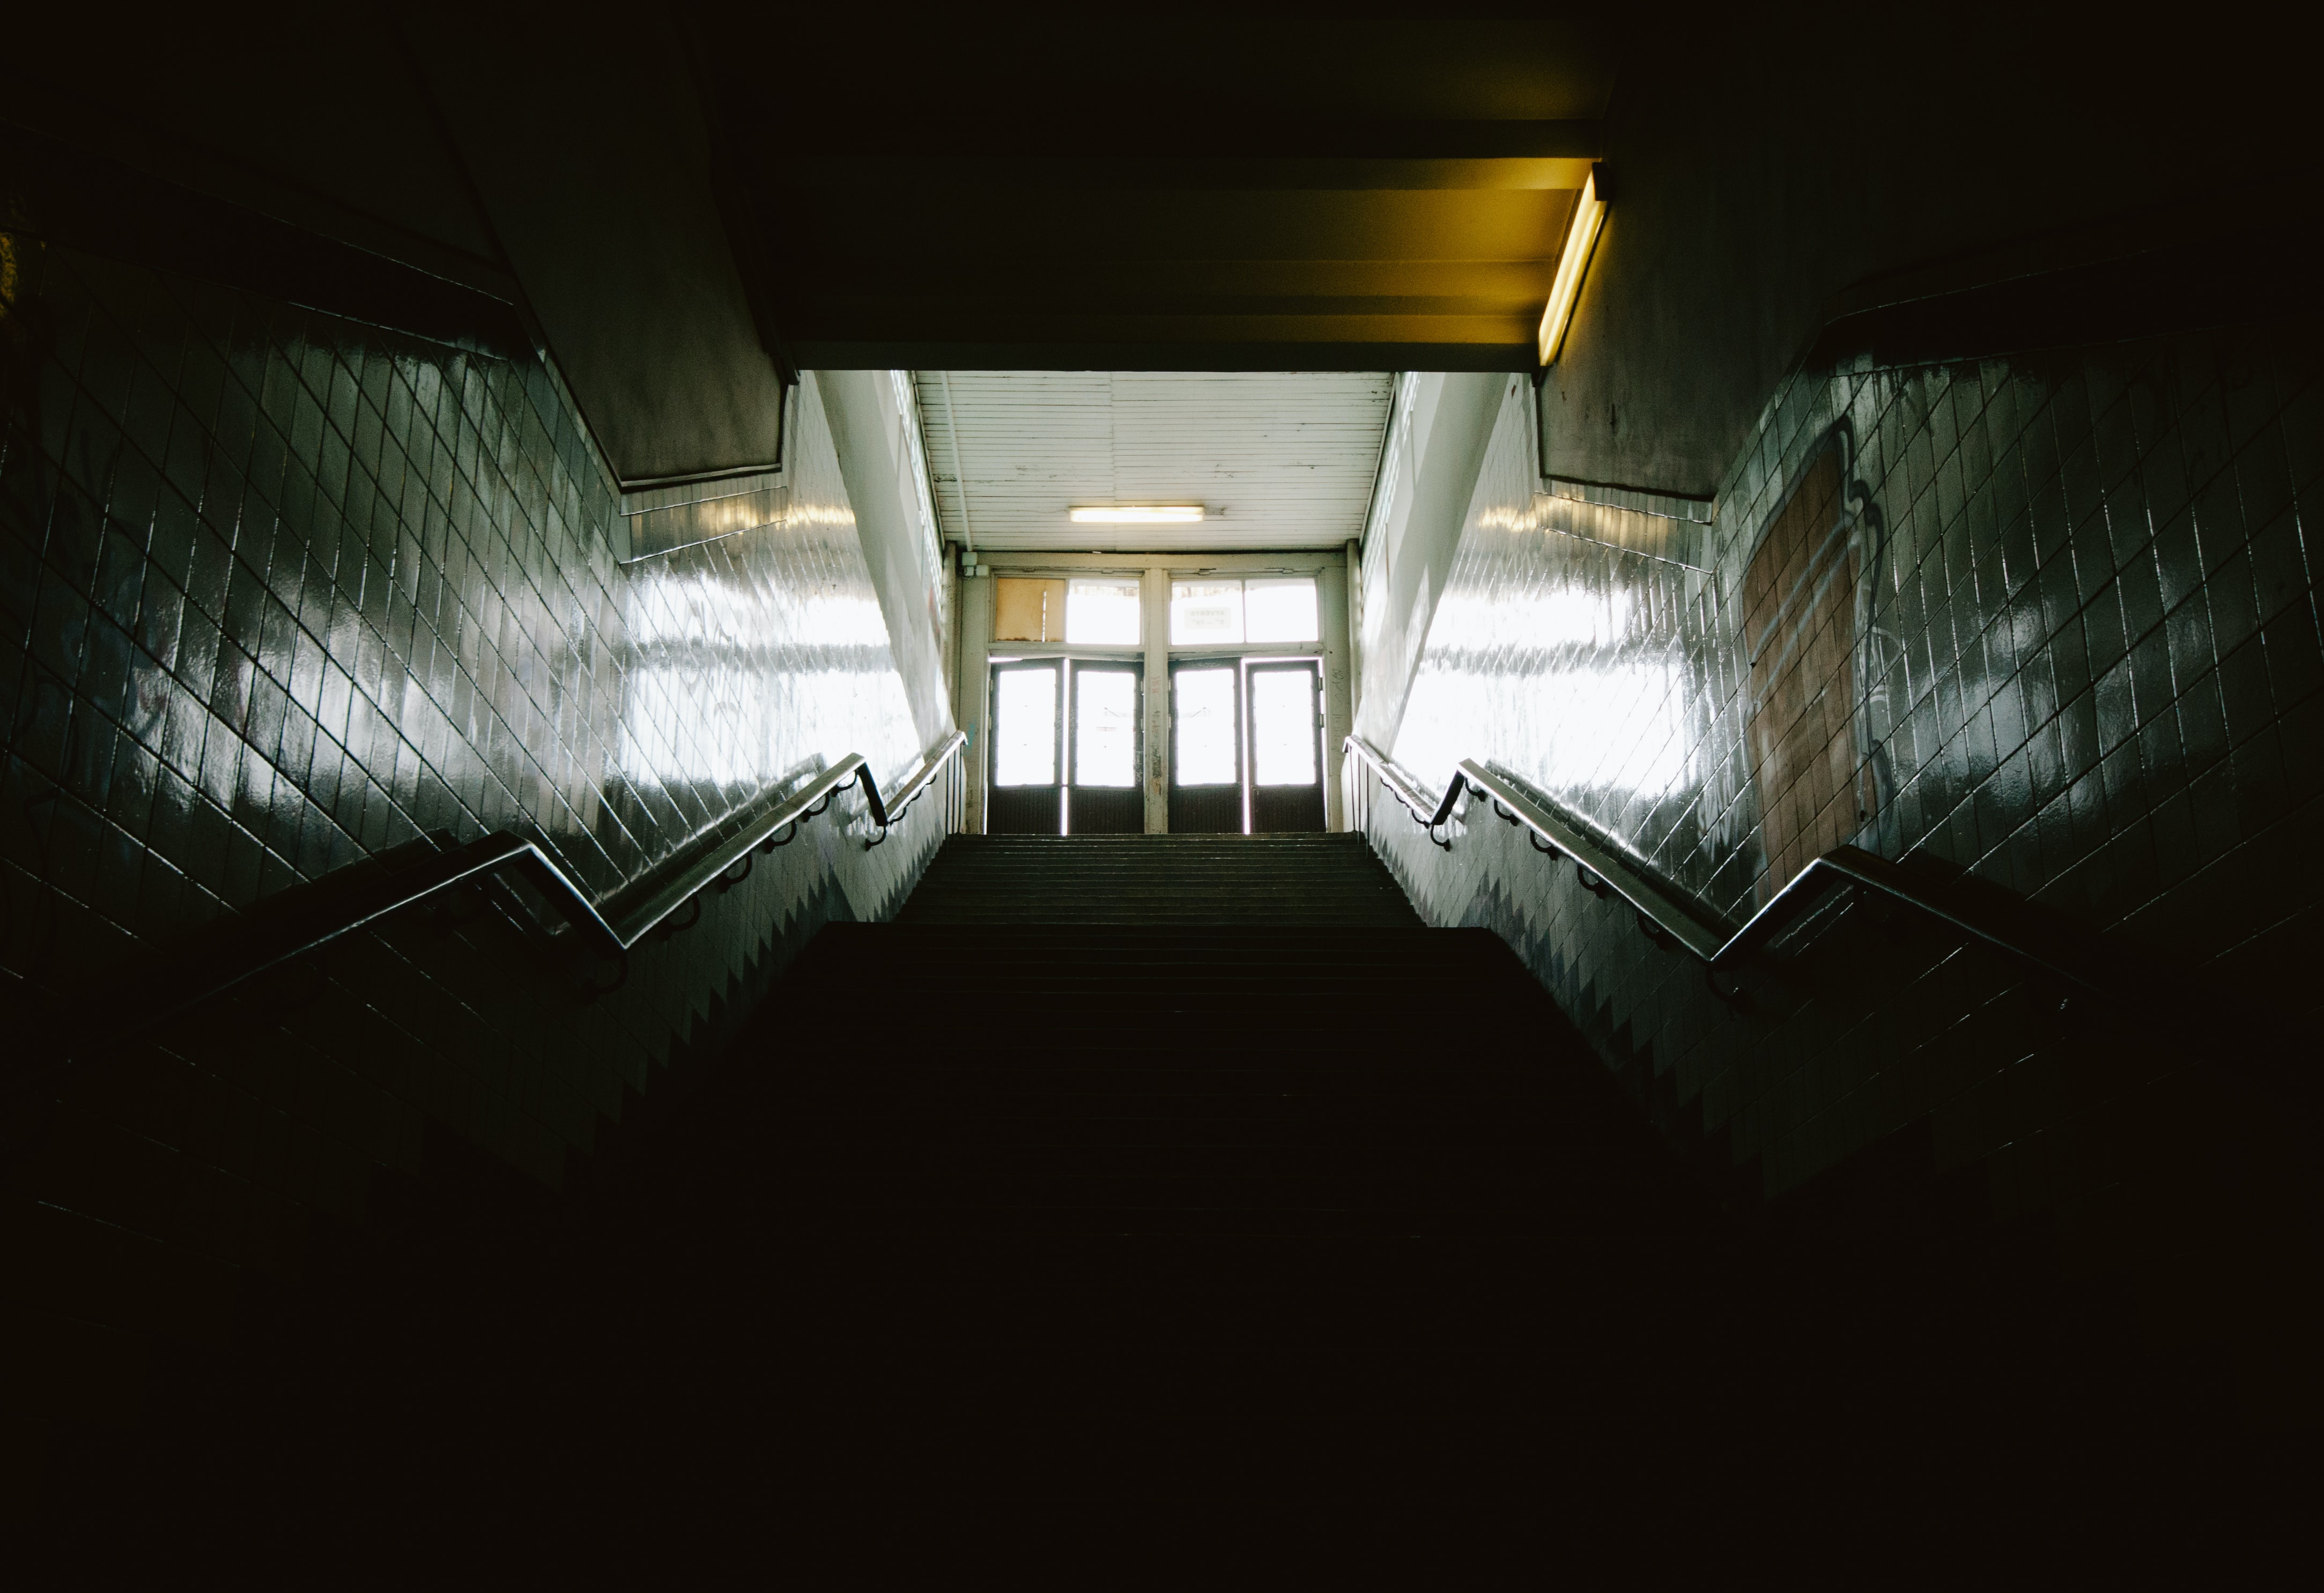 Dark stairwell with light at the top